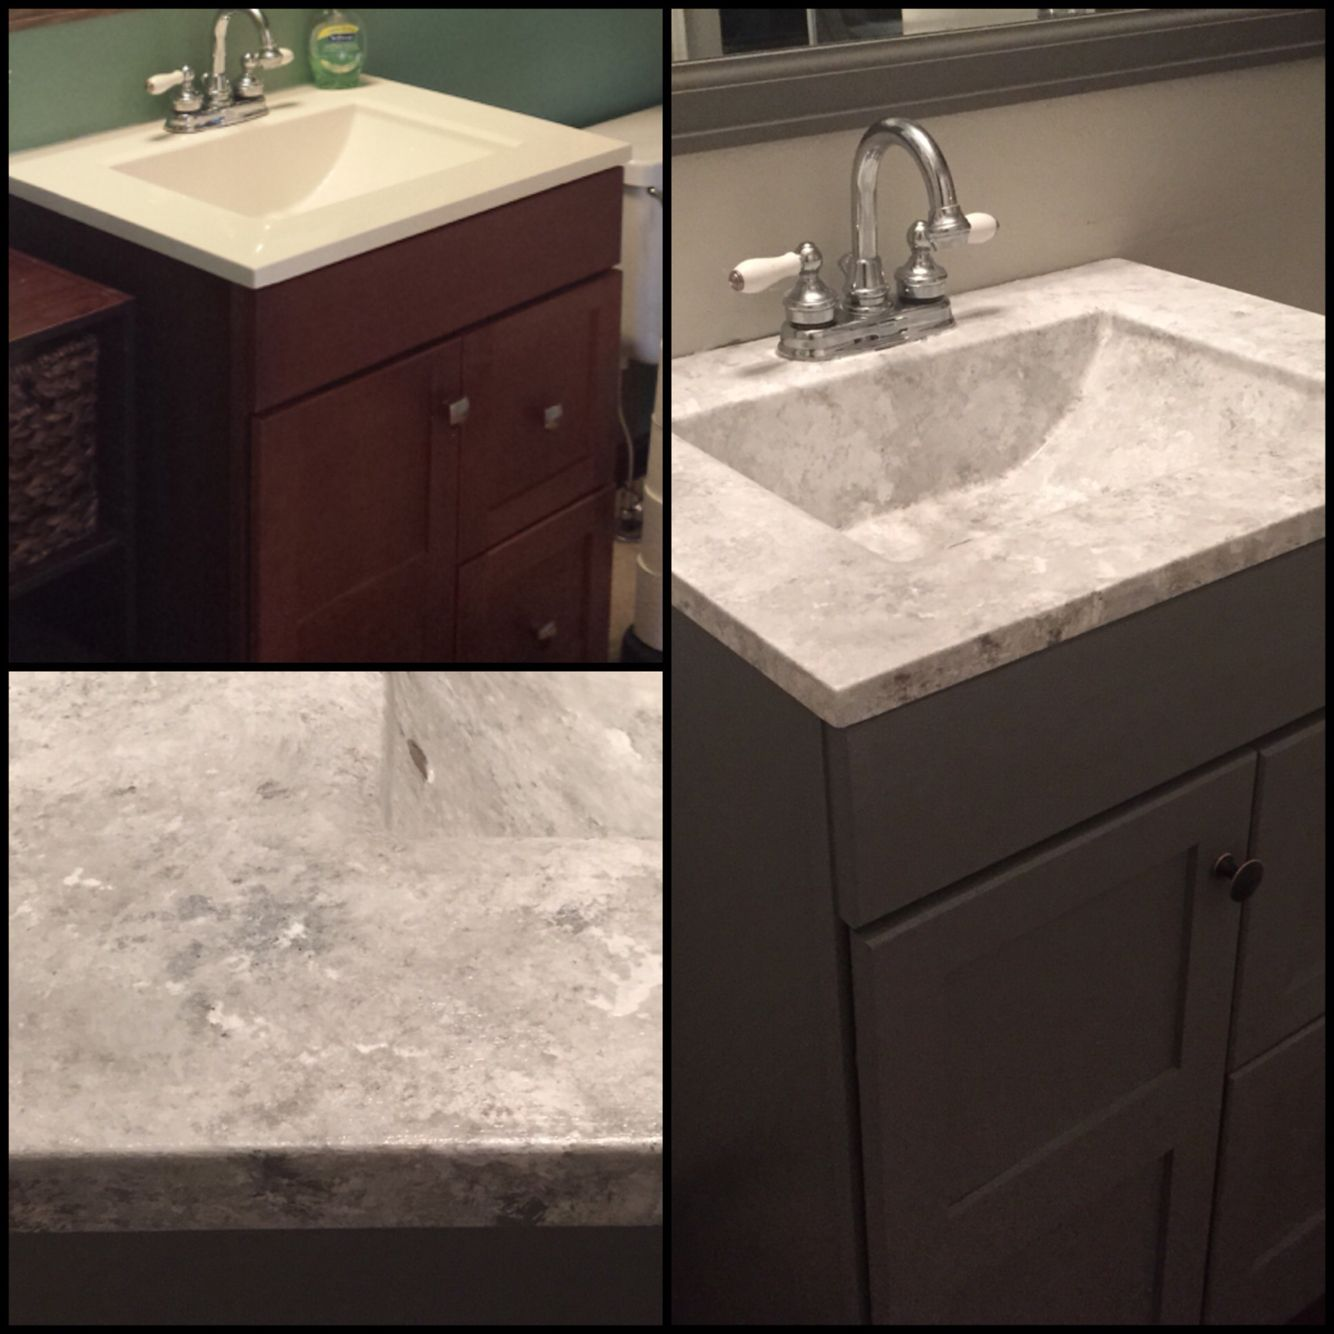 Faux Granite Countertops! Used A Sea Sponge, Toothbrush And Old Paint Brush  To Fake It With 3 Shades Of Grey I Created. Sealed The Counter With A ...